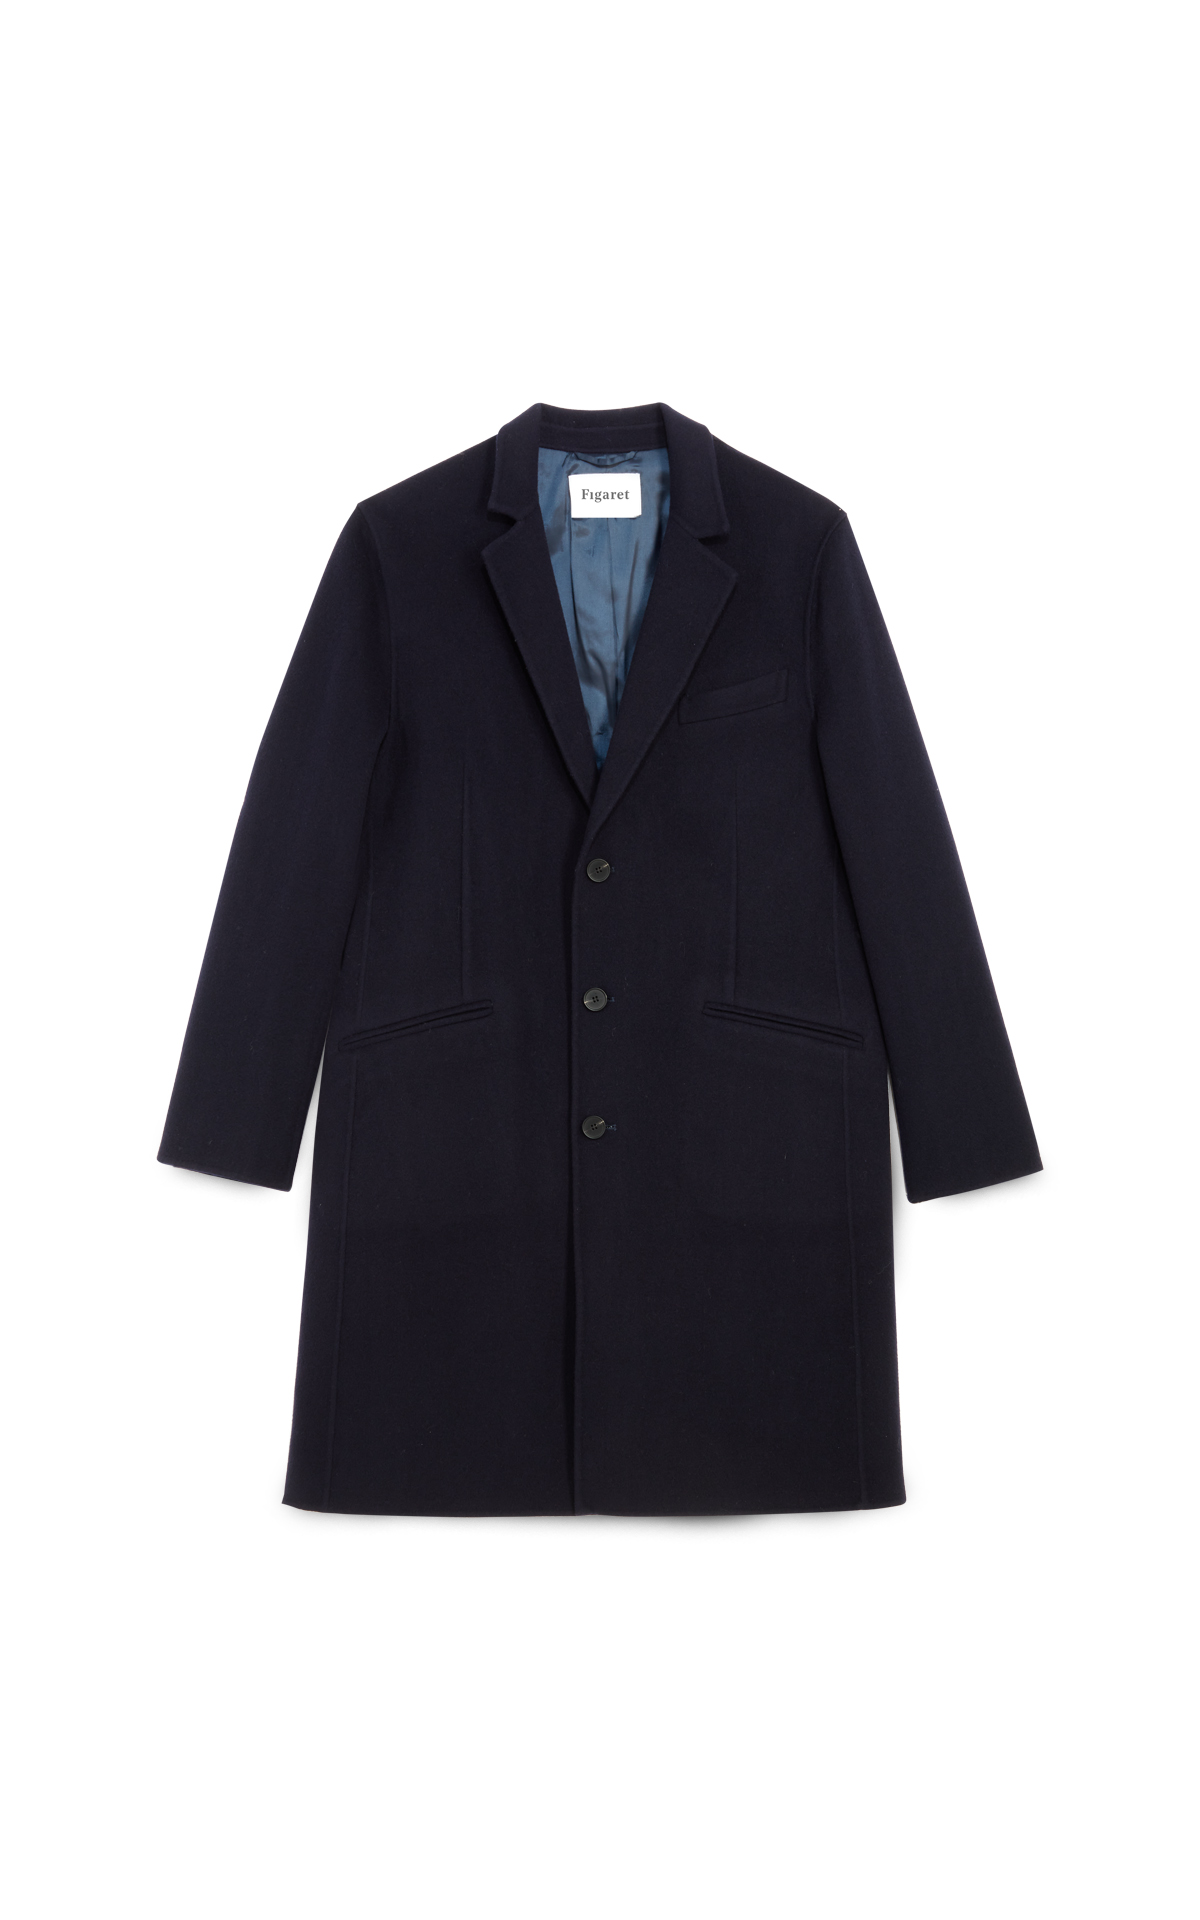 Figaret Paris Manteau Bleu Marine George la vallée village